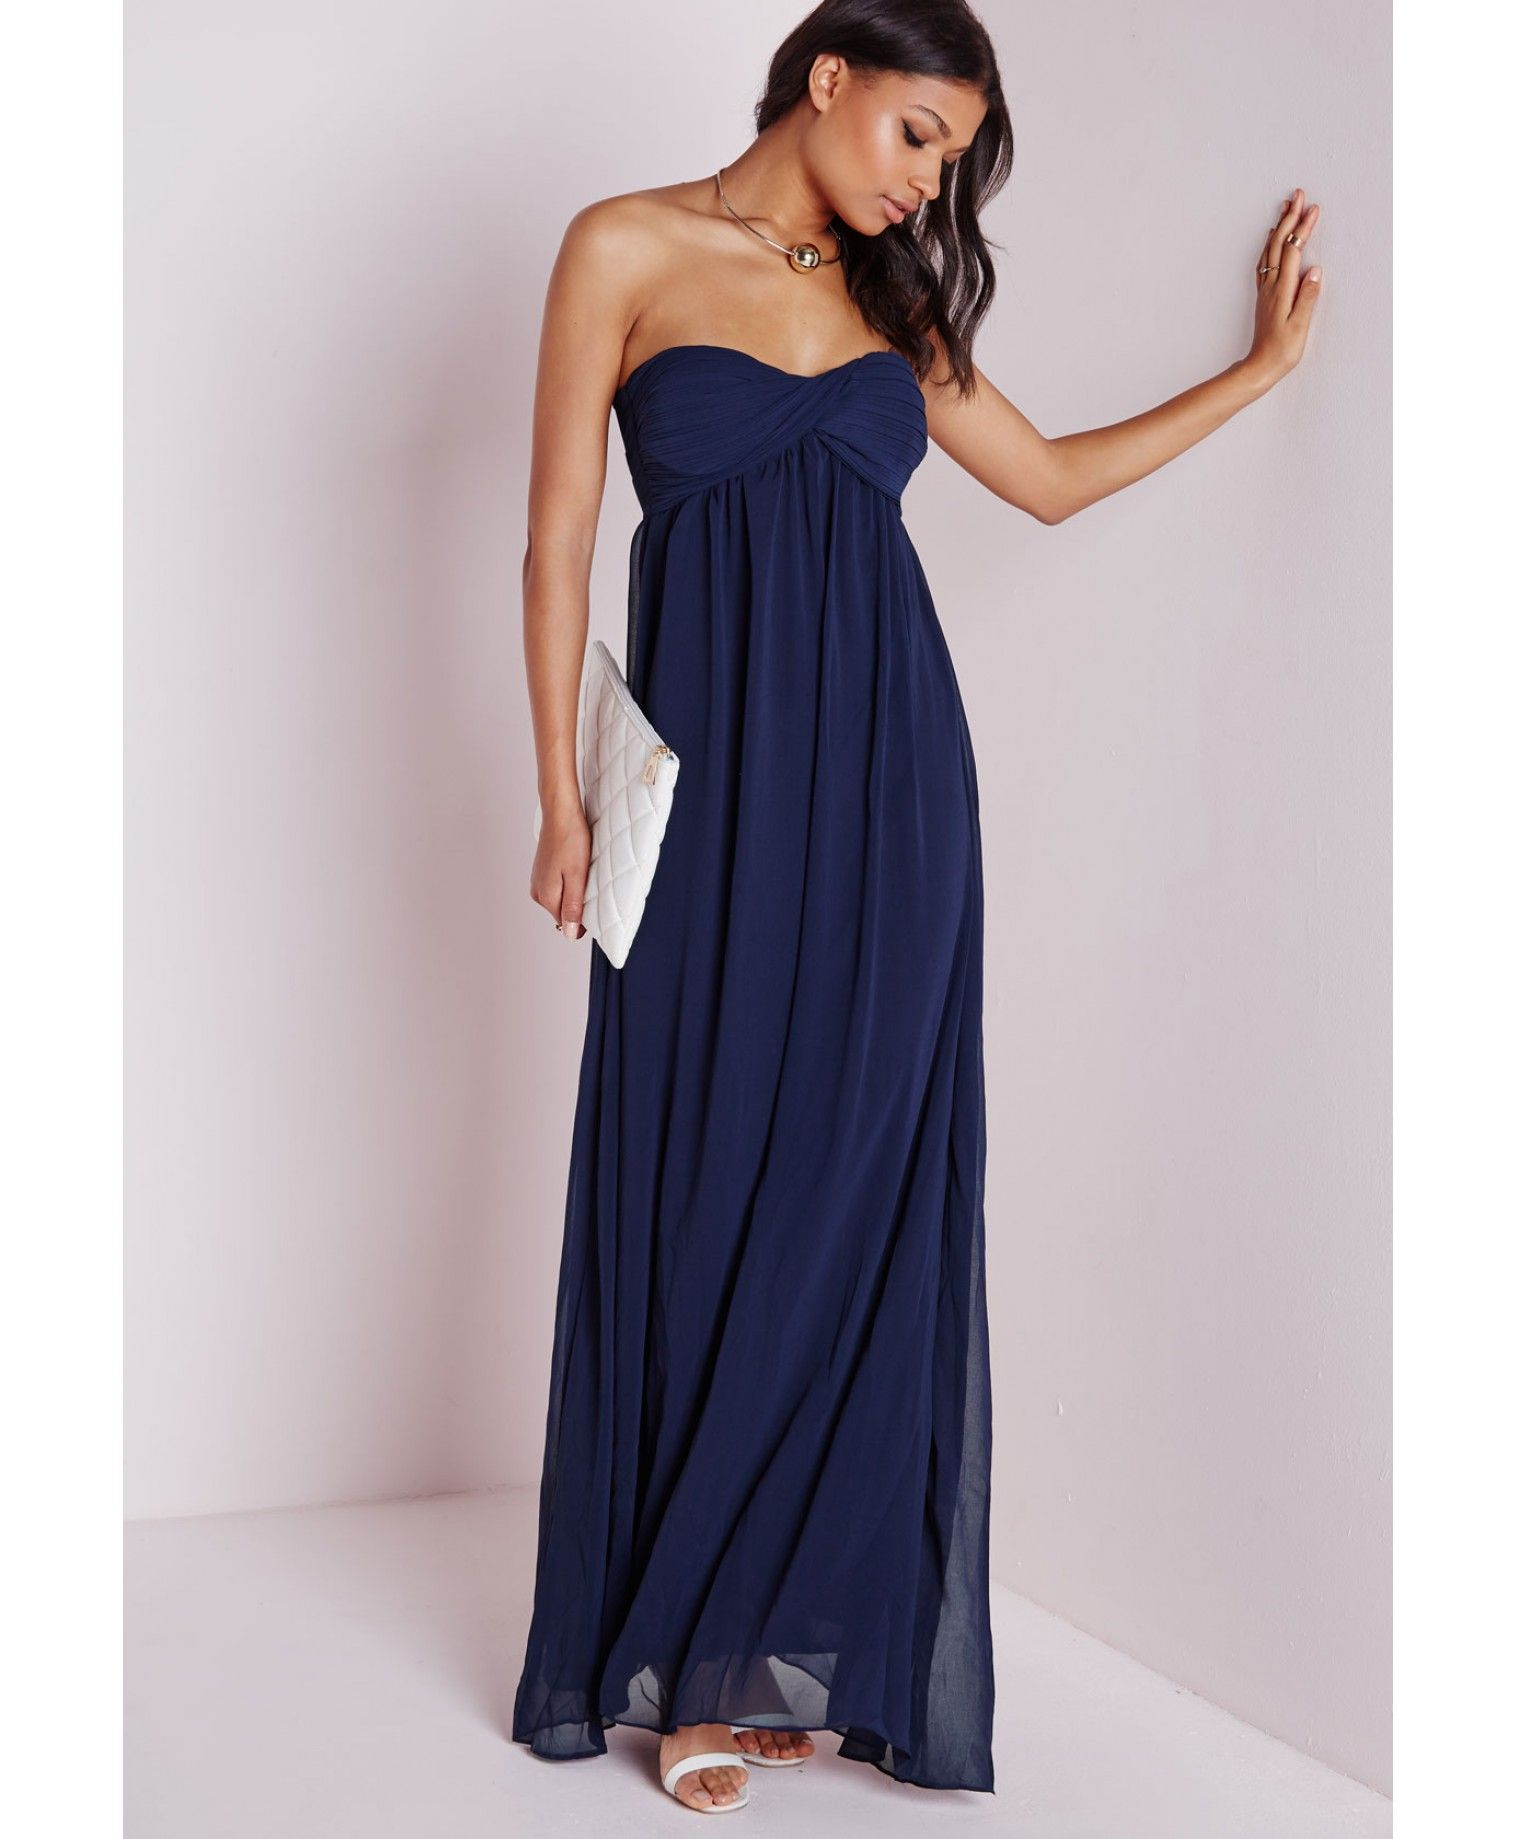 d403e3b3172d0 Gathered Chiffon Maxi Dress Navy   Clothes and styles   Strapless ...